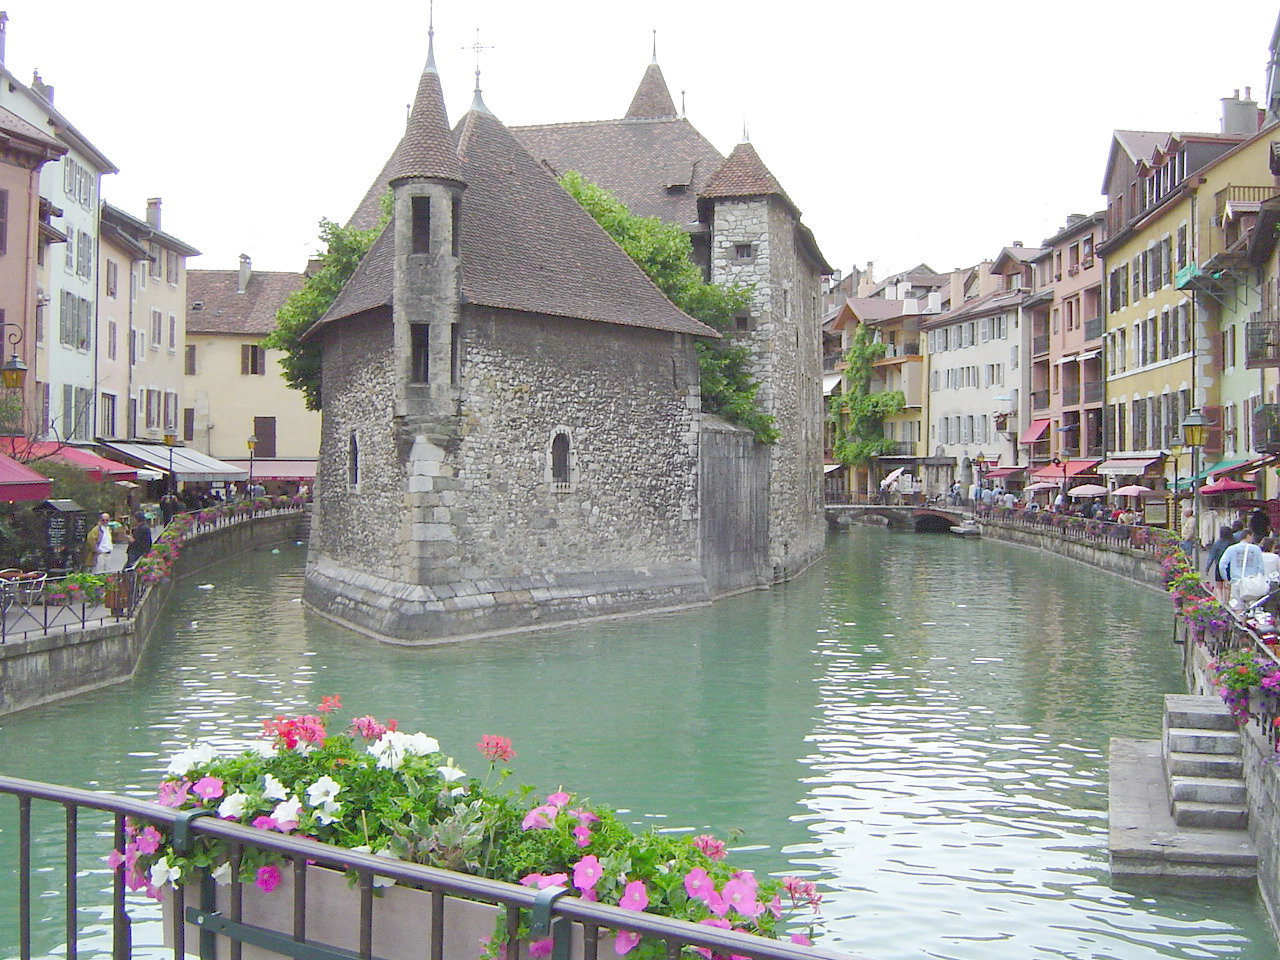 Fond d 39 cran image prison d 39 annecy photo de de roose morgan for Bureau plus annecy